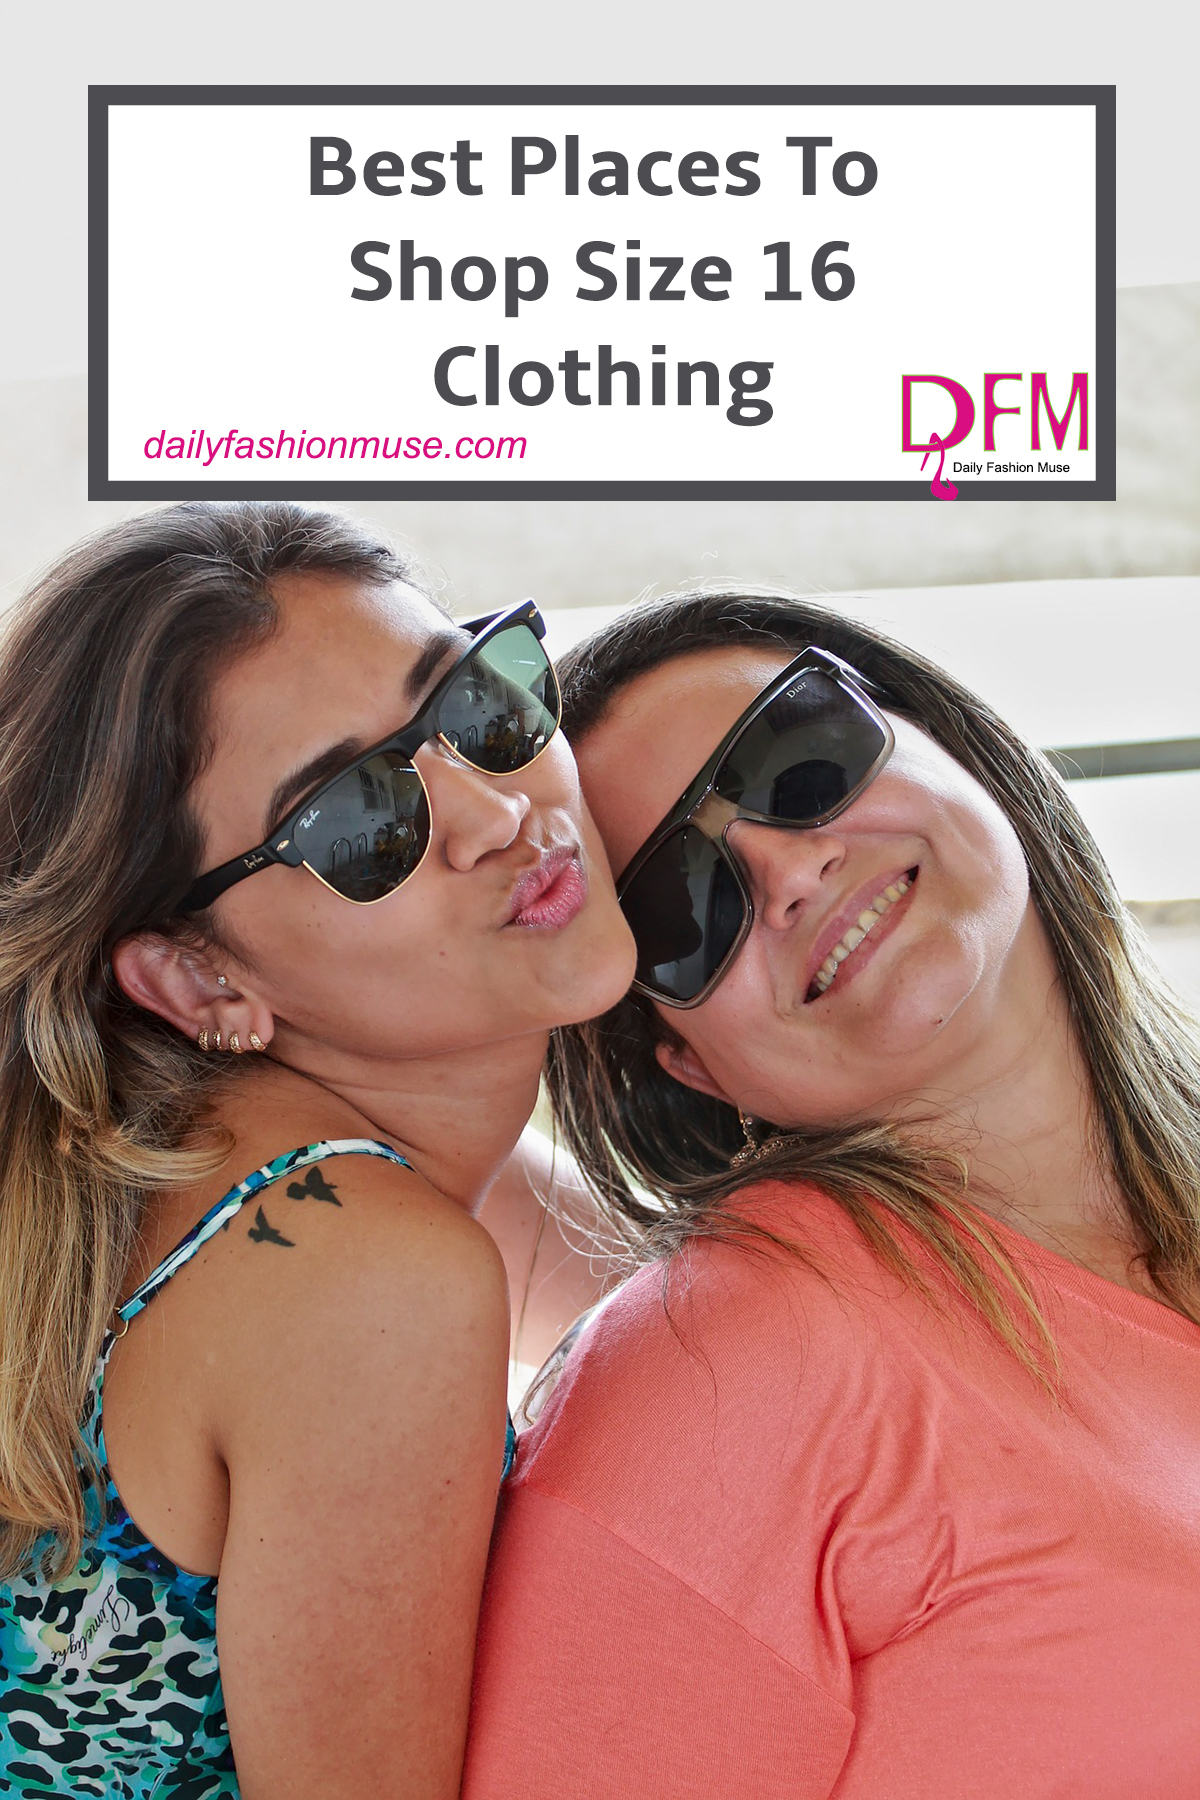 Looking for larger sized clothing but no one seems to carry anything in your size? What's a girl to do. Click to see who caters to the size 16 women.